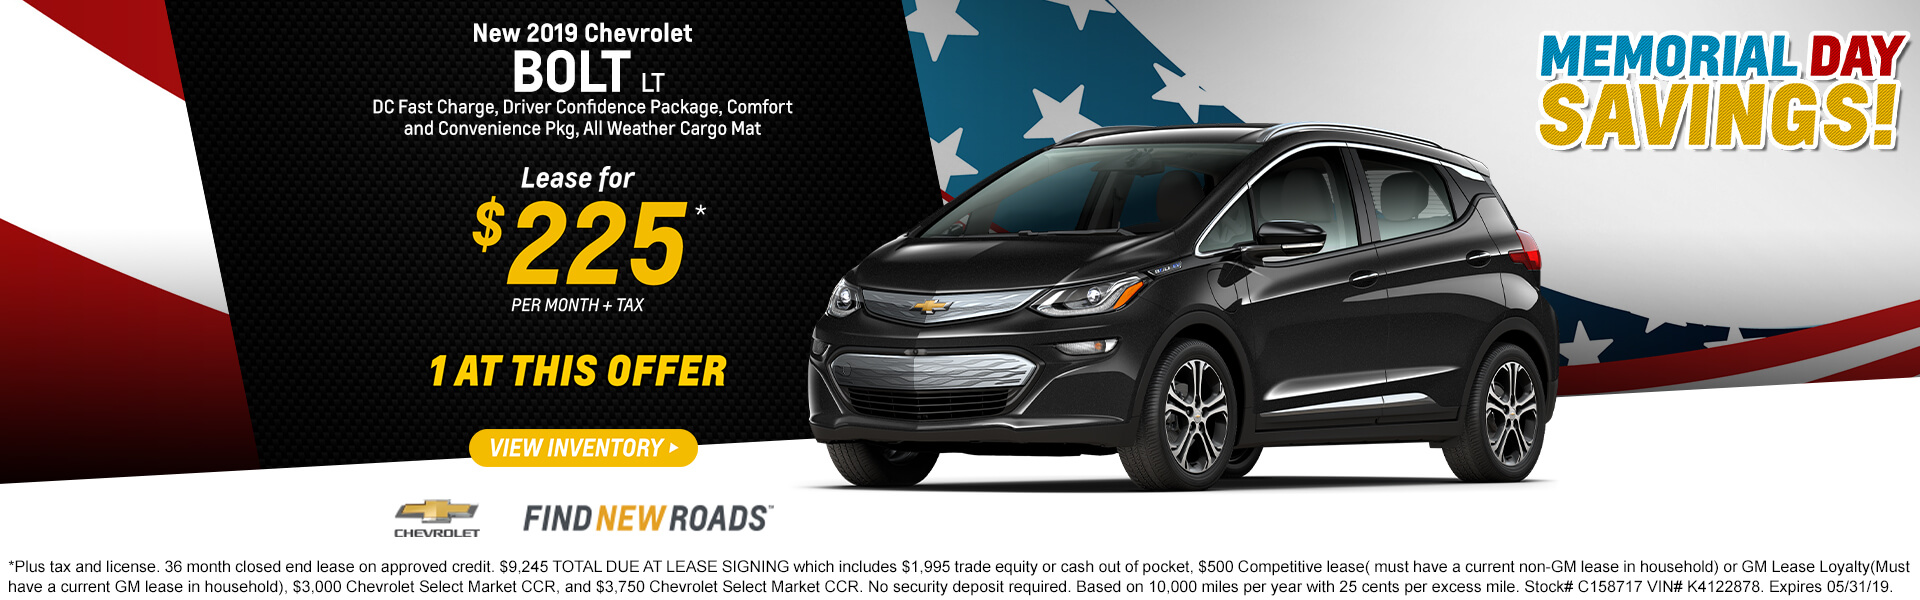 2019 Bolt EV LT Lease $225 $9,245 TOTAL DUE AT LEASE SIGNING which includes $1,995 trade equity or cash out of pocket, $500 Competitive lease( must have a current non-GM lease in household) or GM Lease Loyalty(Must have a current GM lease in household), $3,000 Chevrolet Select Market CCR, and $3,750 Chevrolet Select Market CCR. No security deposit required. Based on 10,000 miles per year with 25 cents per excess mile. Stock# C158717 VIN# K4122878. Expires 05/31/19.